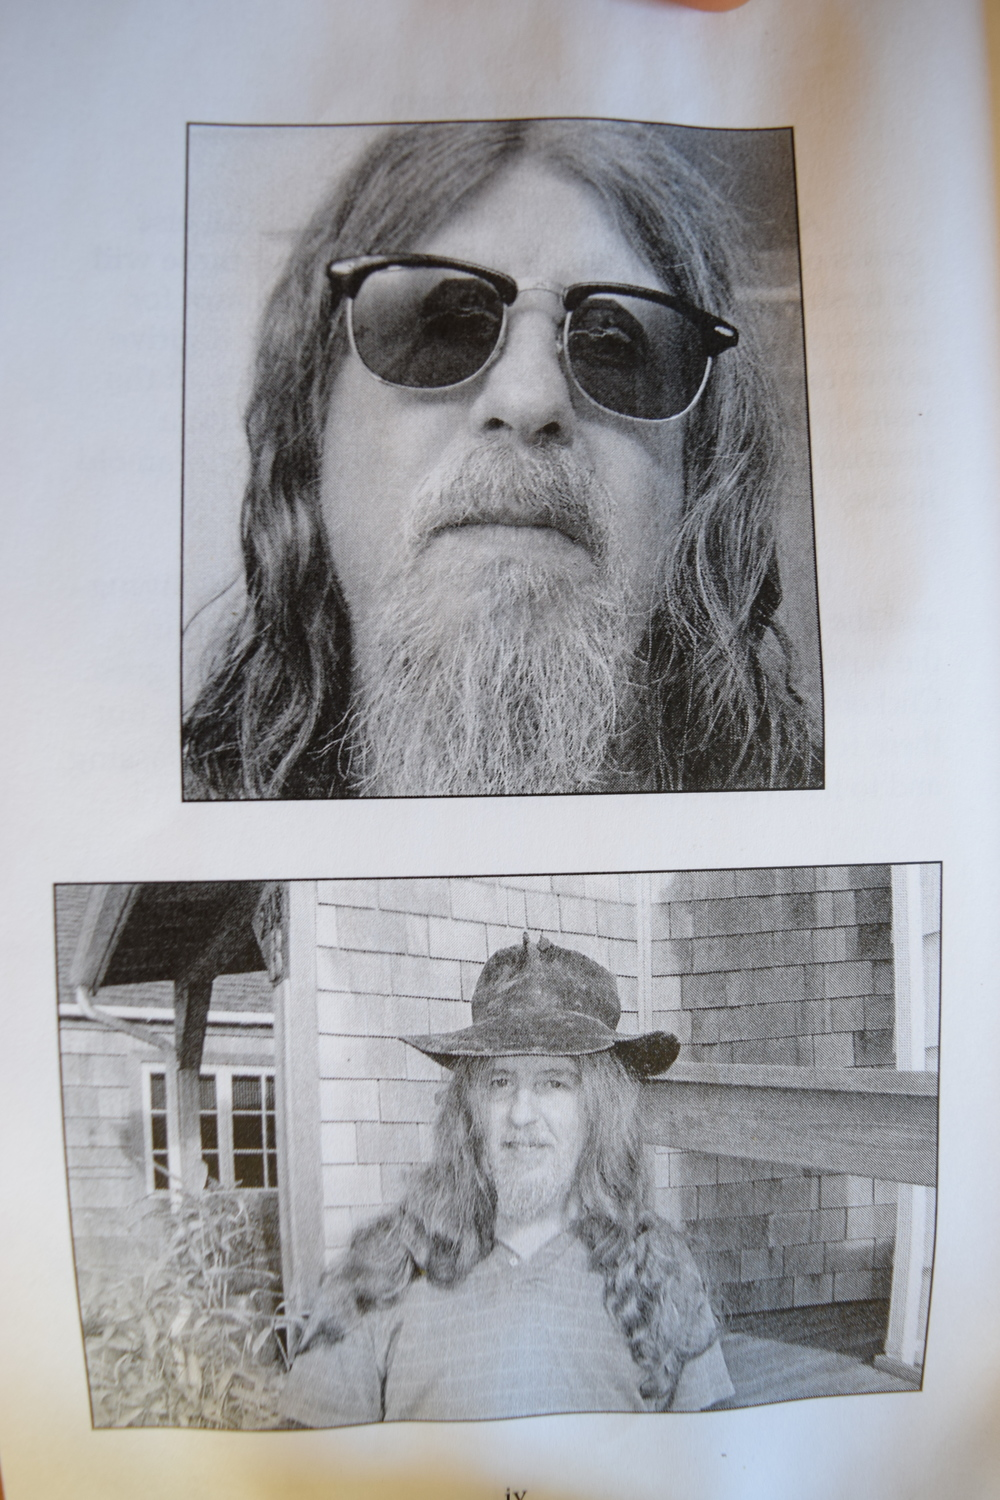 Photos of the author, from the book